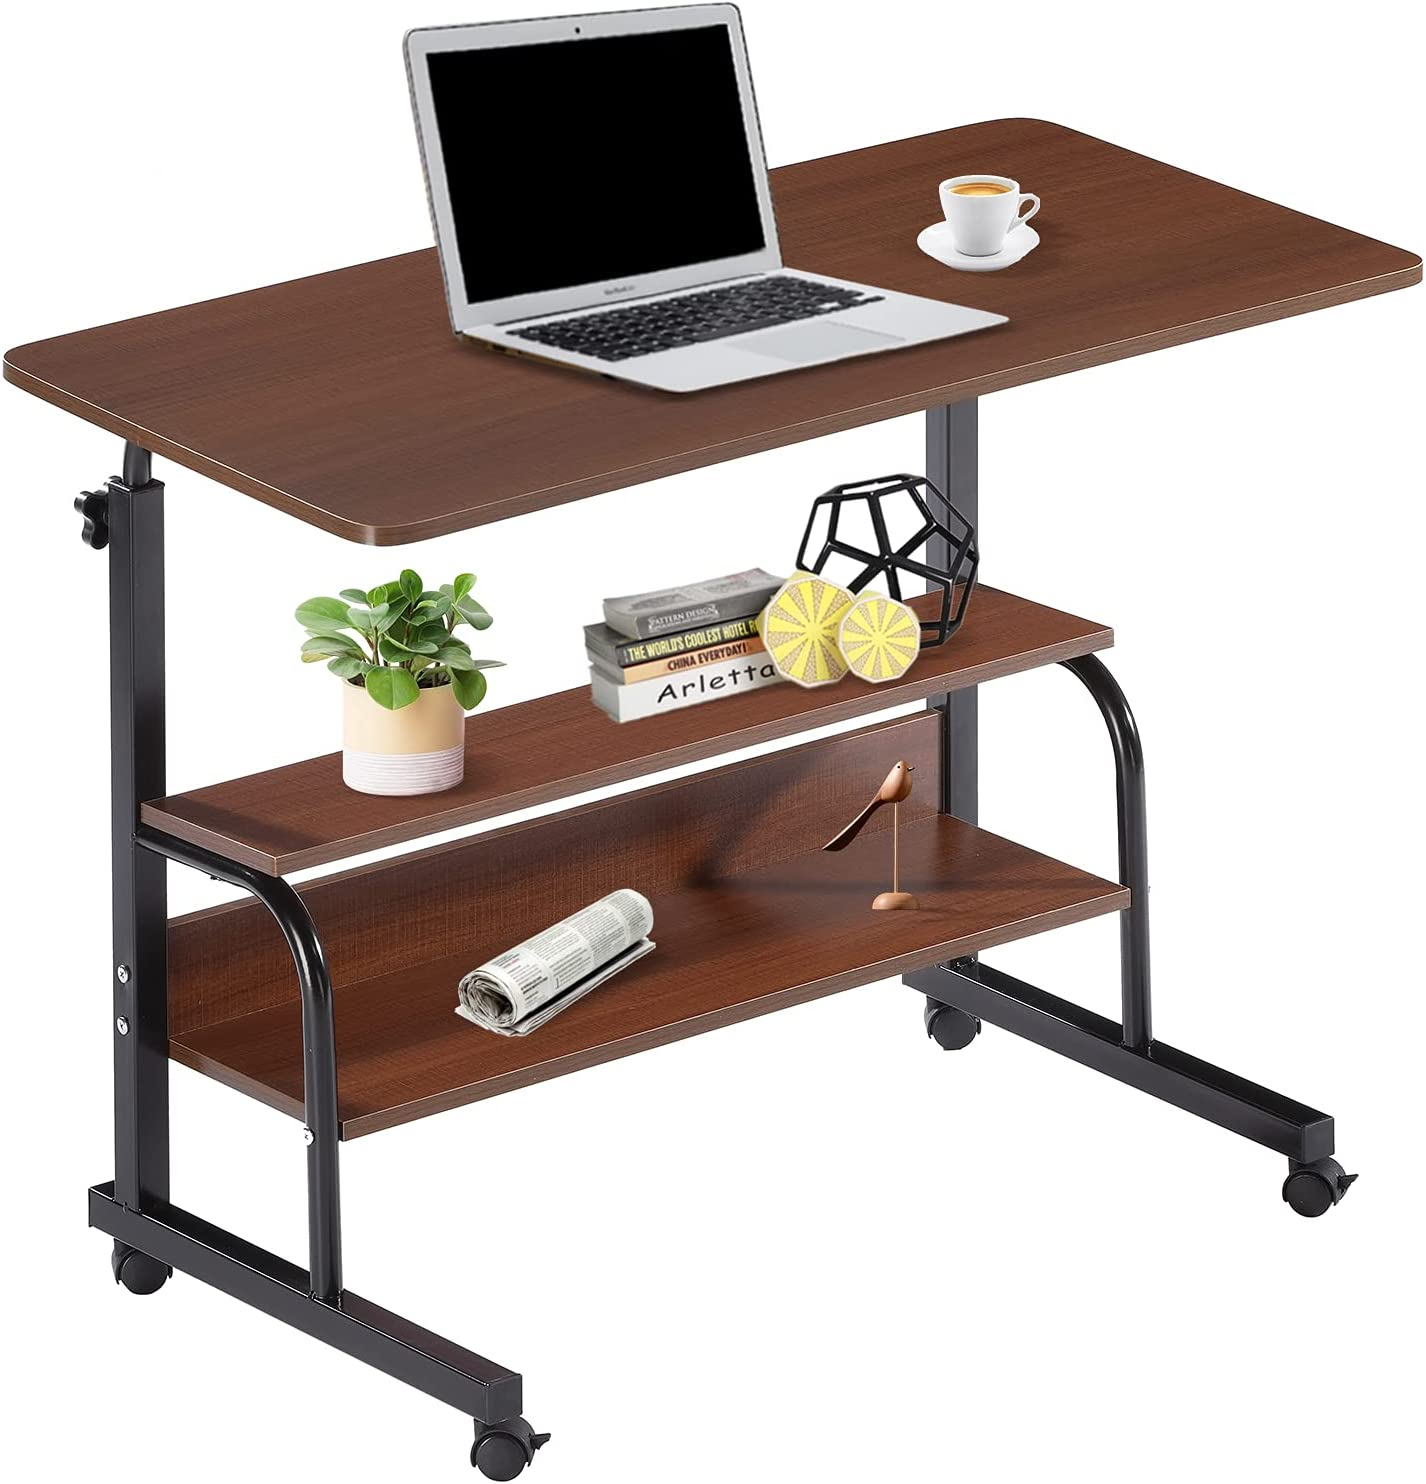 Computer Desk Home Office Student Writing Standing Desk with Storage, Study Desk Laptop Table for Small Space, Small Portable Stand Up Desk for Home Bedroom, Adjustable Rolling Desk 32x16 inch